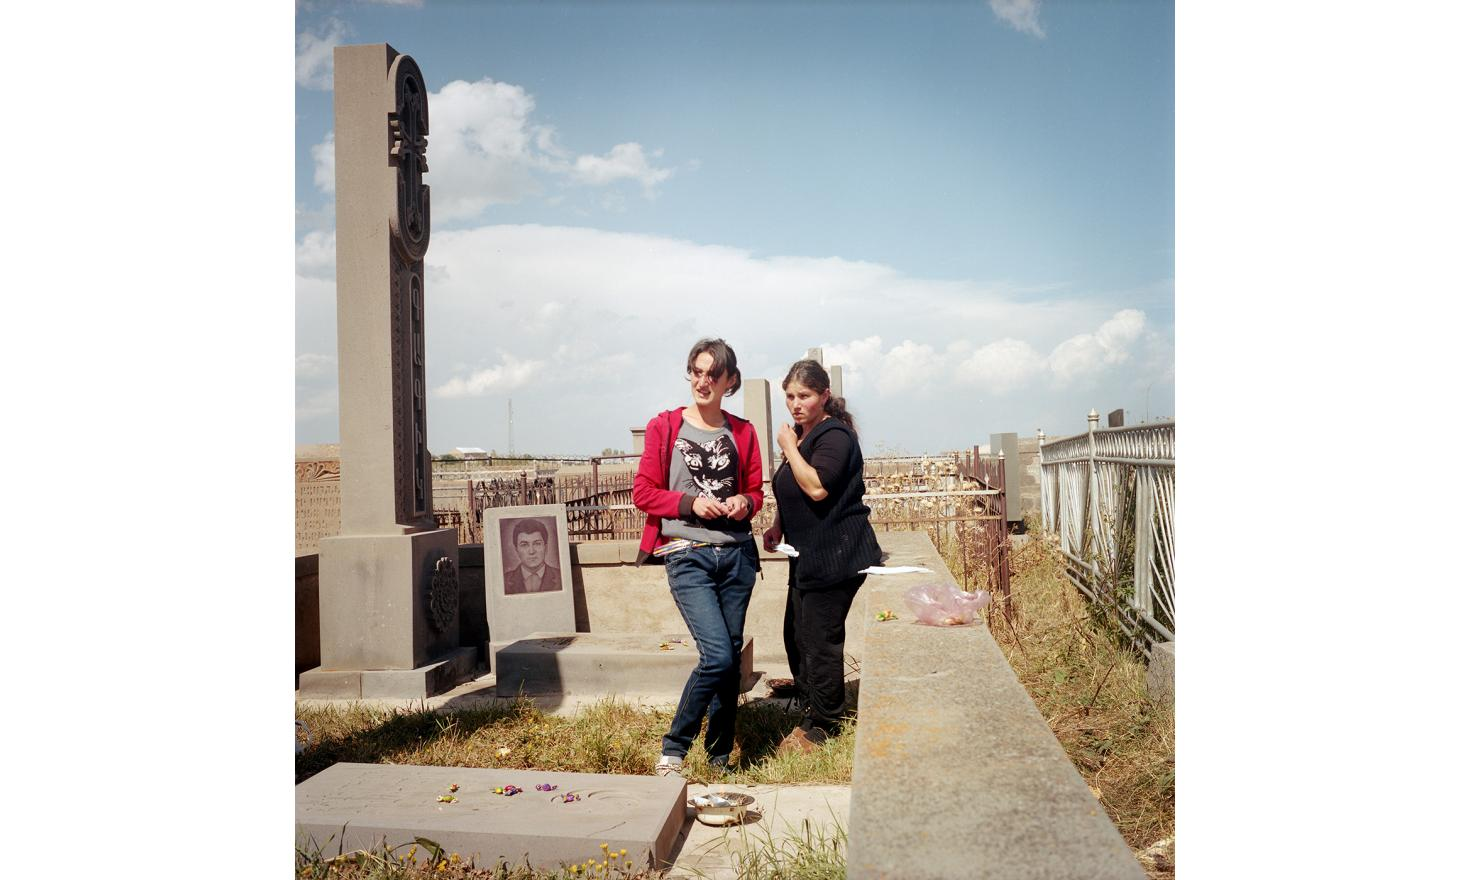 Today is the feast of the dead, the villagers go to the cemetery. They burn incense on the graves and will leave candy as offering. Ana (left) and Elvira (right) (cousins by marriage) go there together. Their husbands are in Russia.